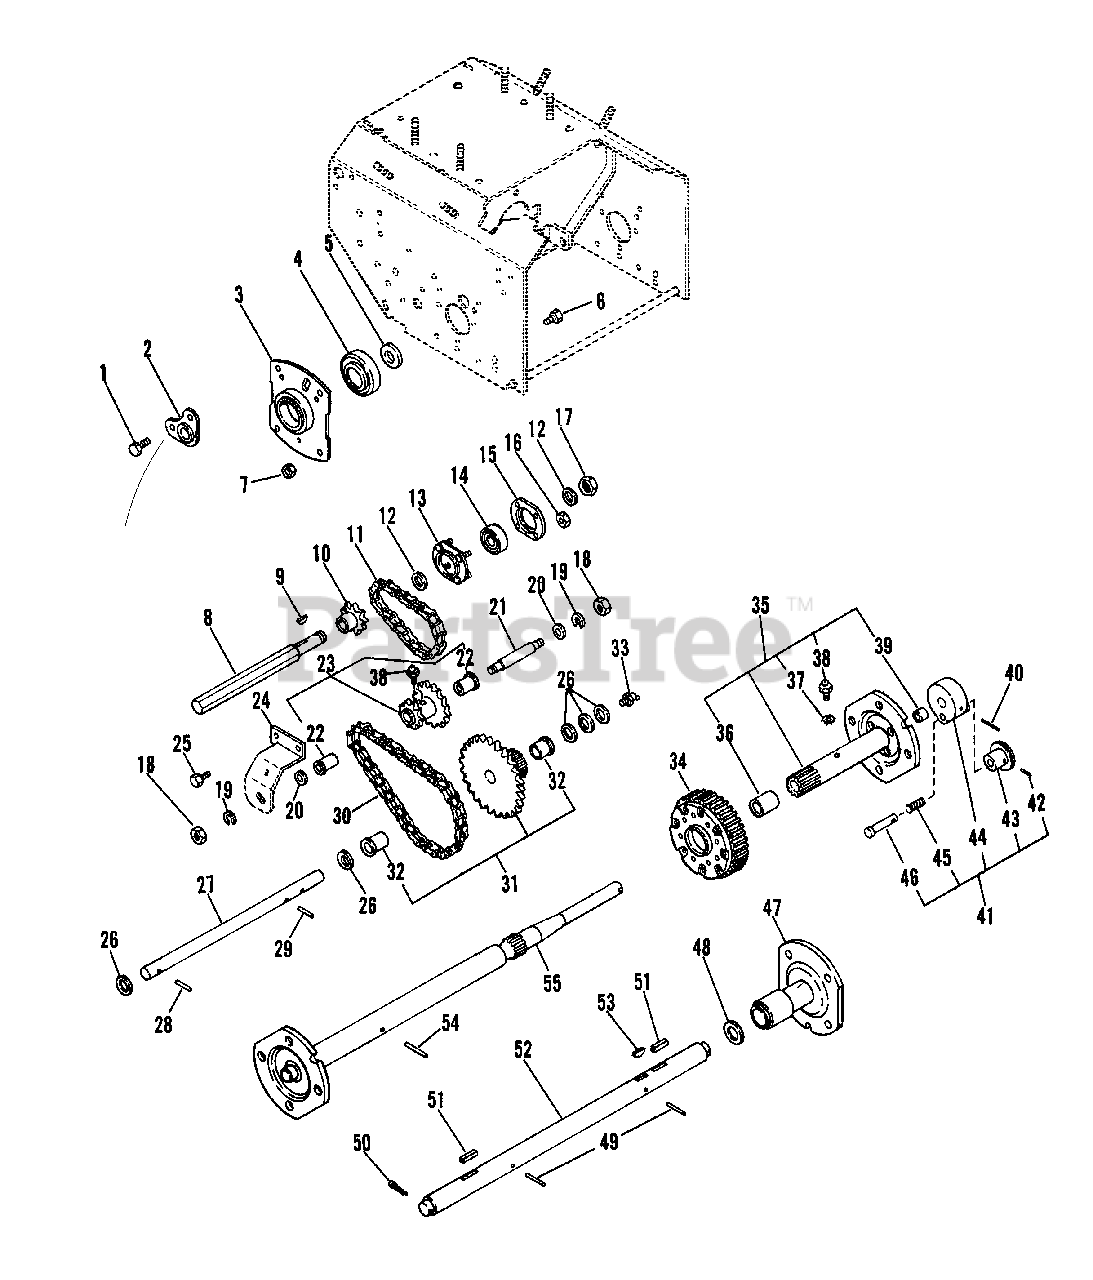 Ariens Parts on the Reduction Drive Diagram for 924050 (ST